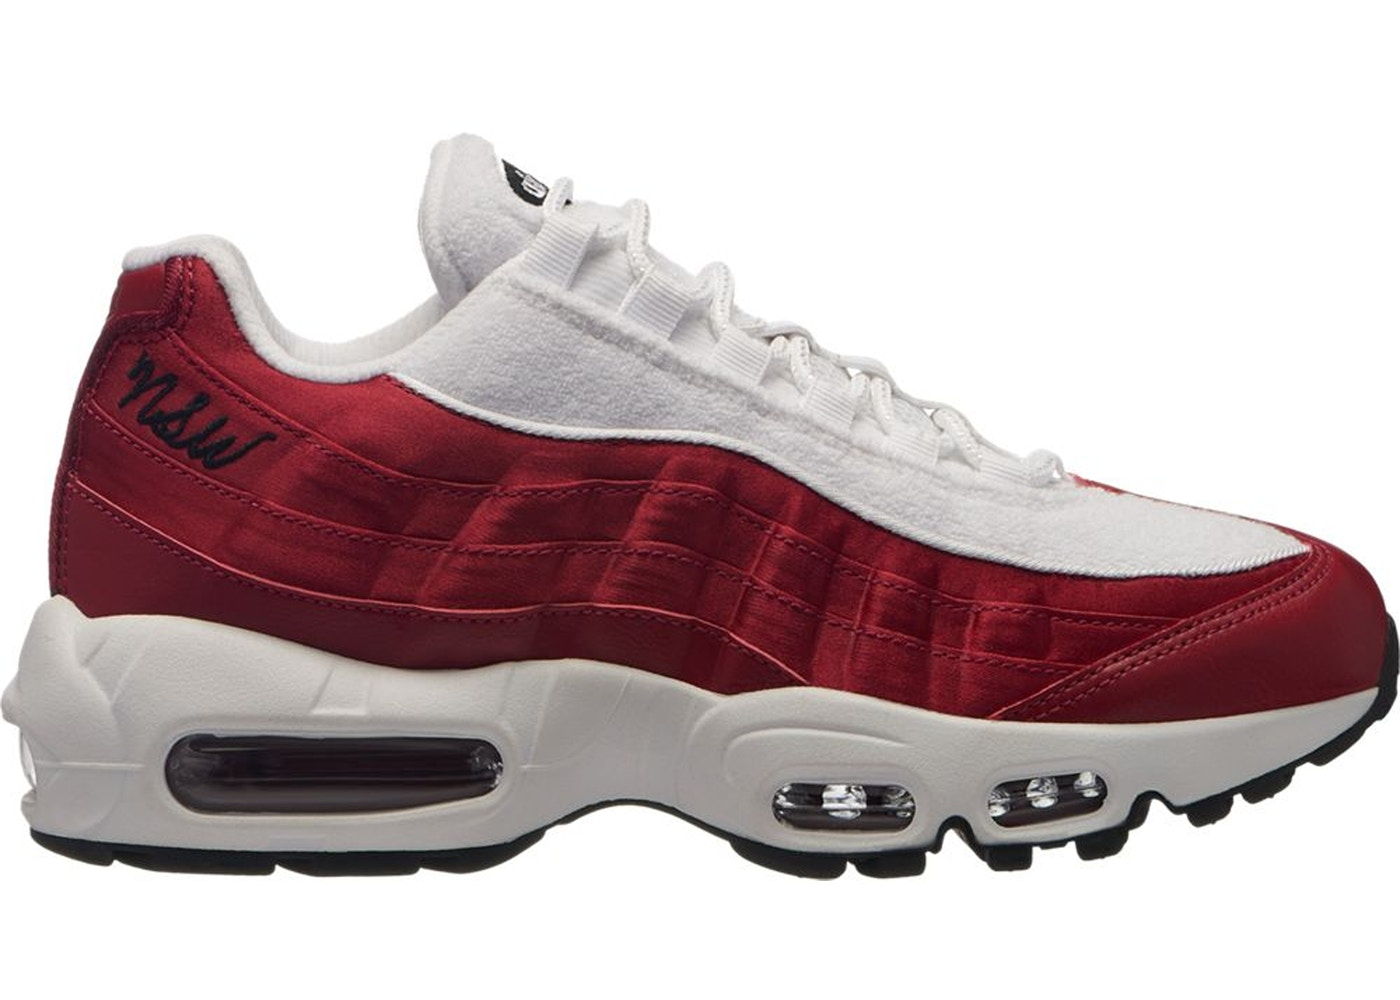 on sale 01d37 f3003 Air Max 95 LX Red Crush (W)